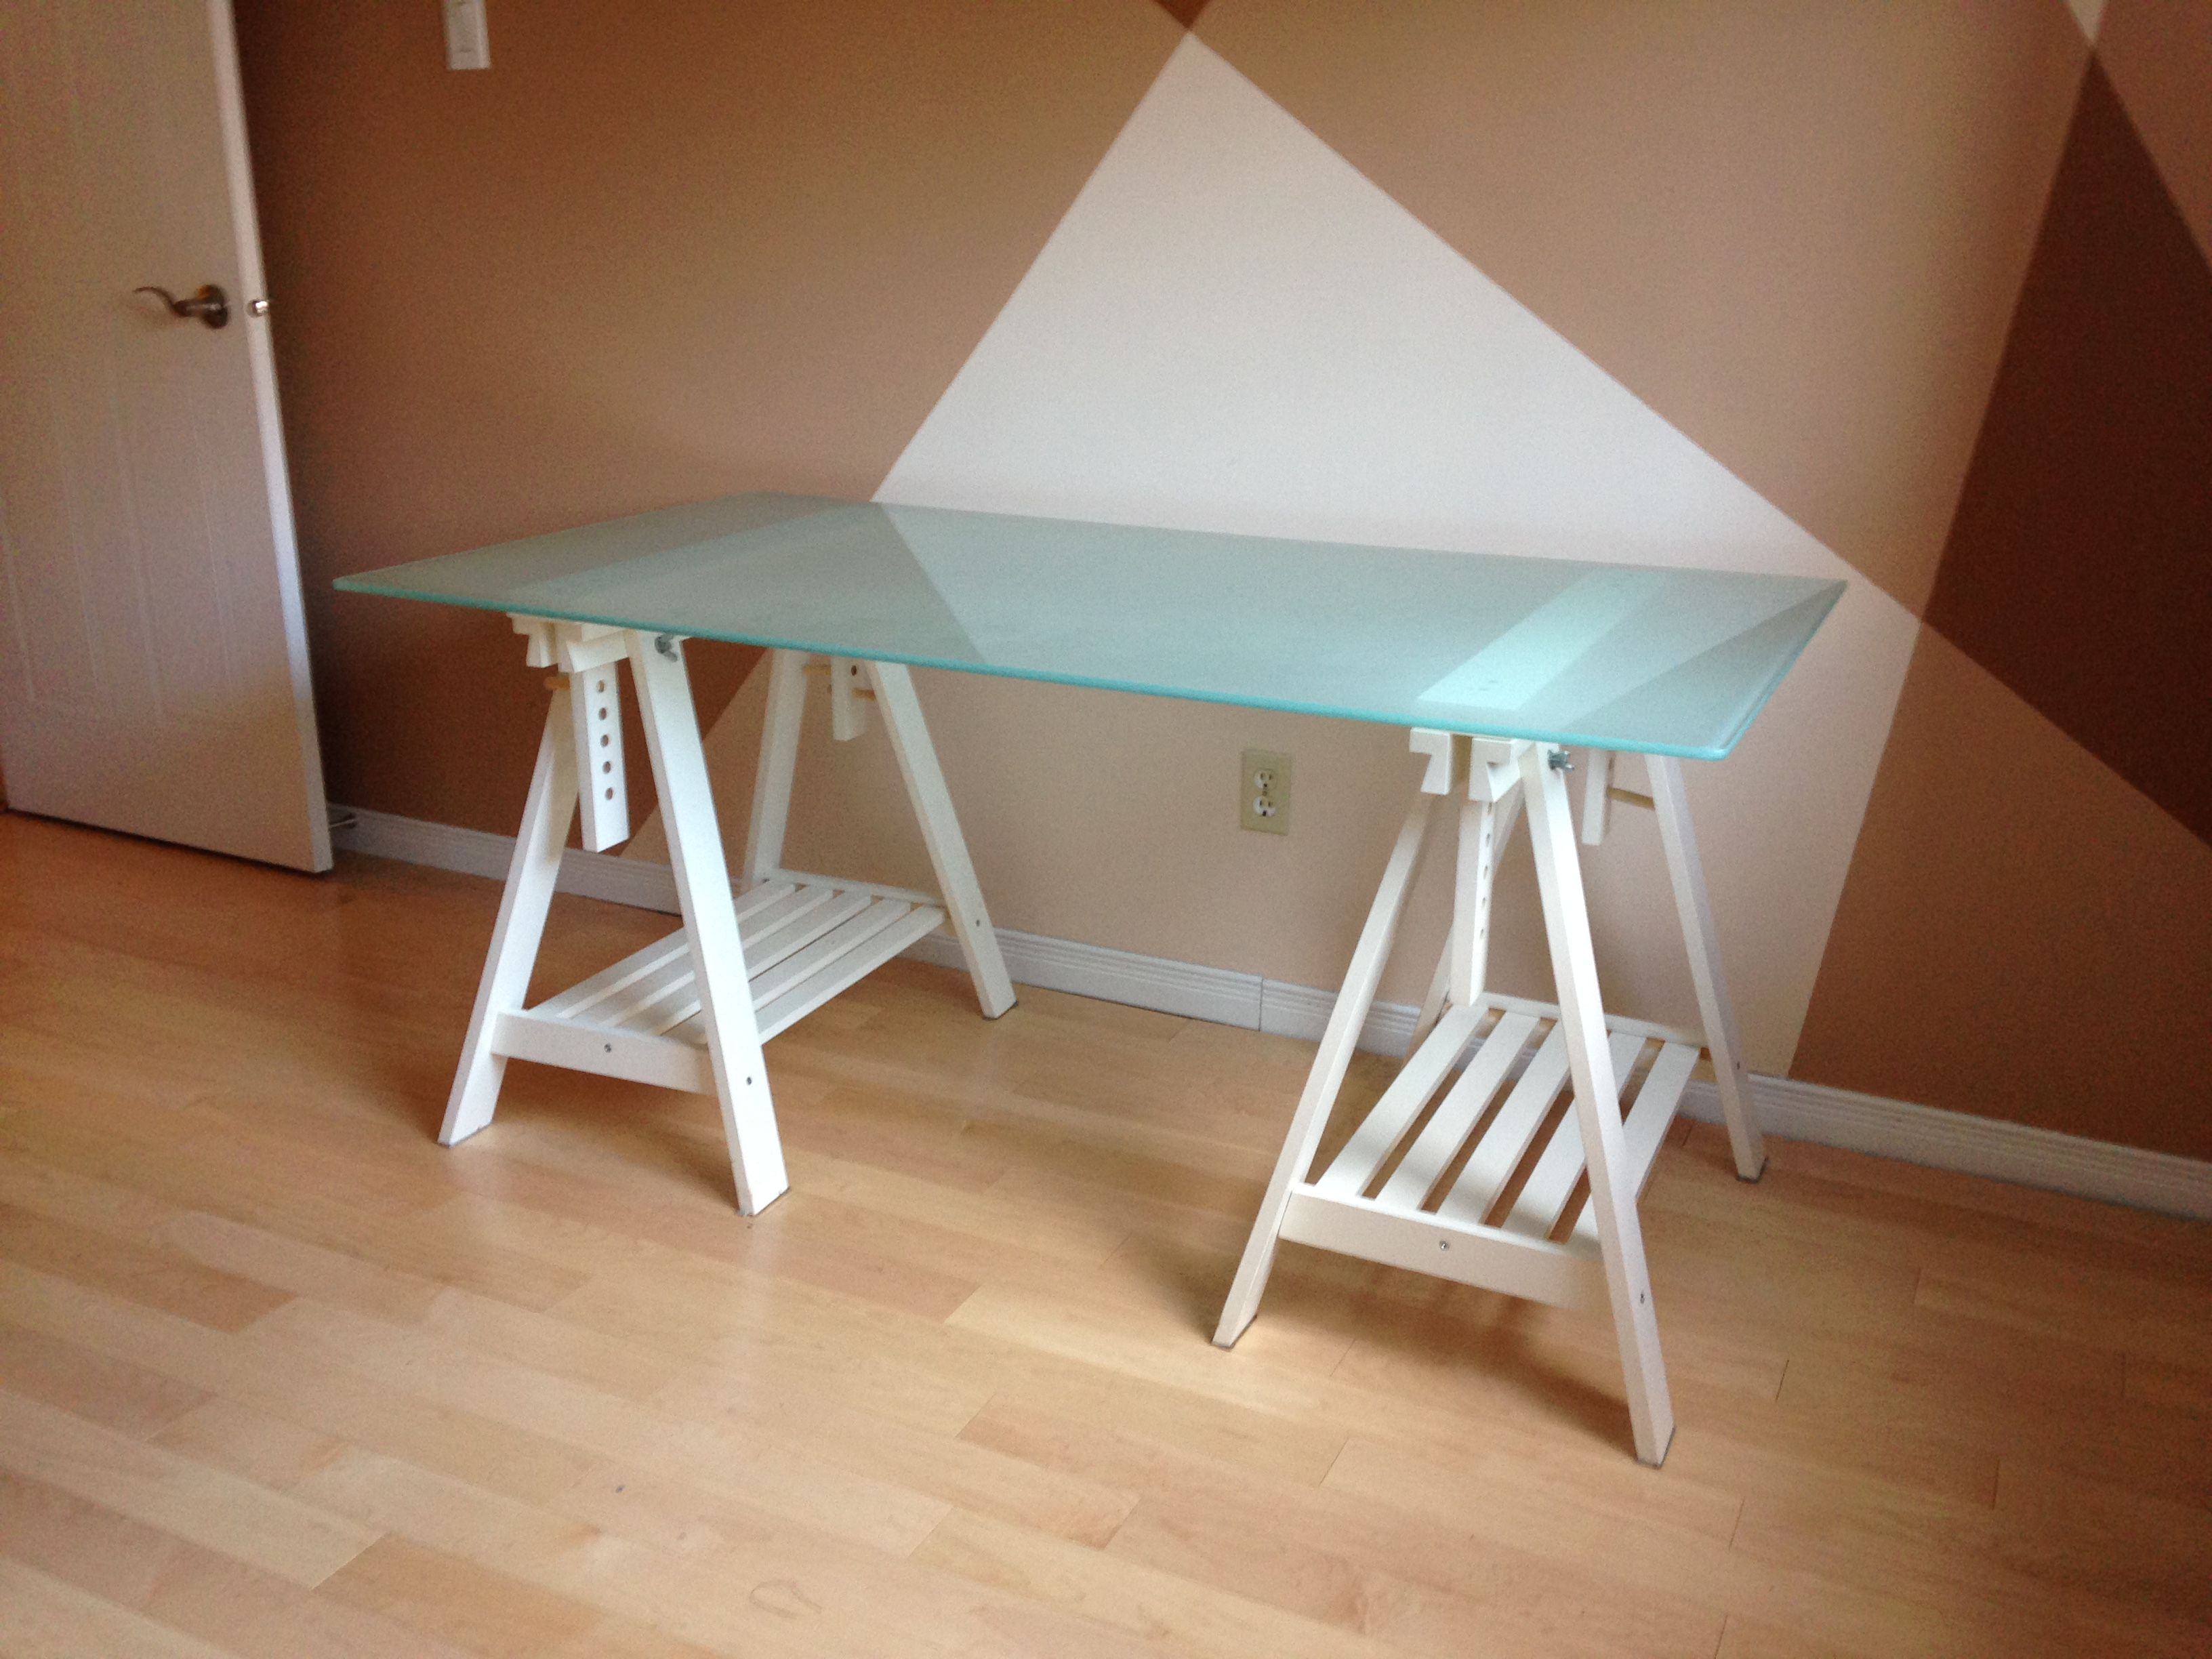 Ikea glass table desk - Ikea Glass Desk Top With Adjustable White Trestle Legs Ikea Glasholm Glass Table Top